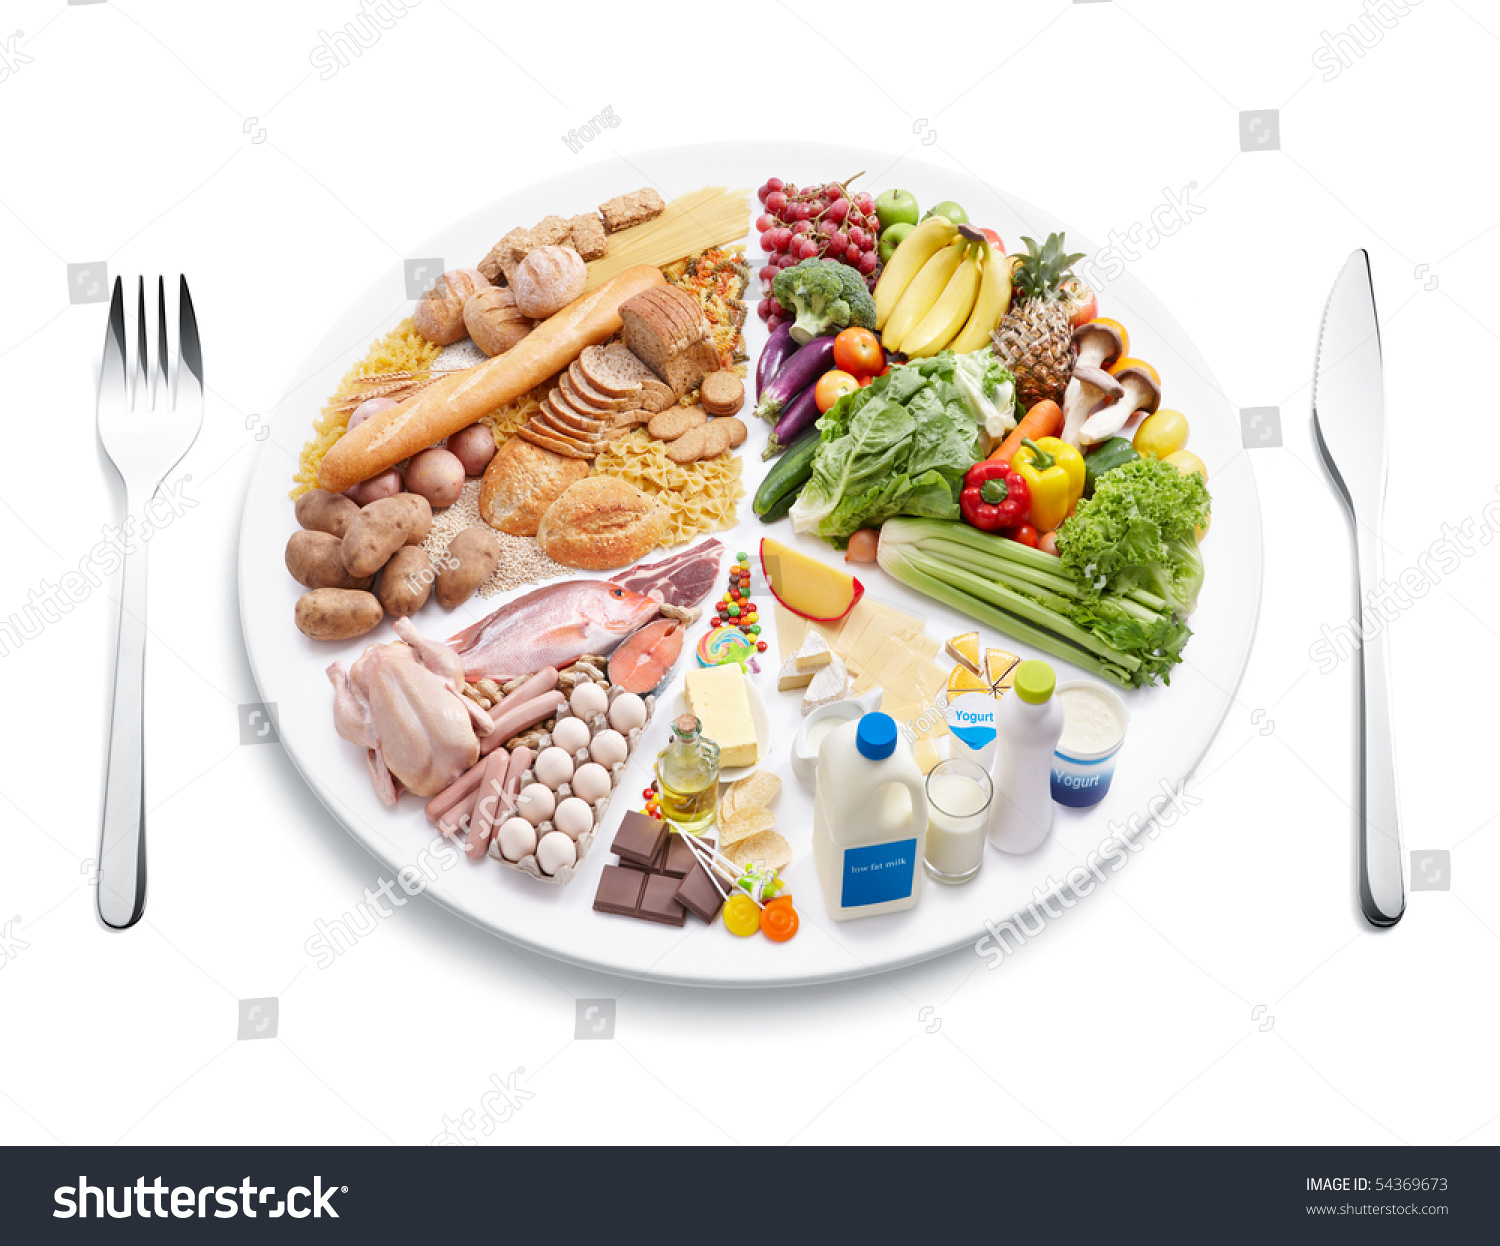 Food Pyramid Pie Chart On Plate With Cutlery Stock Photo